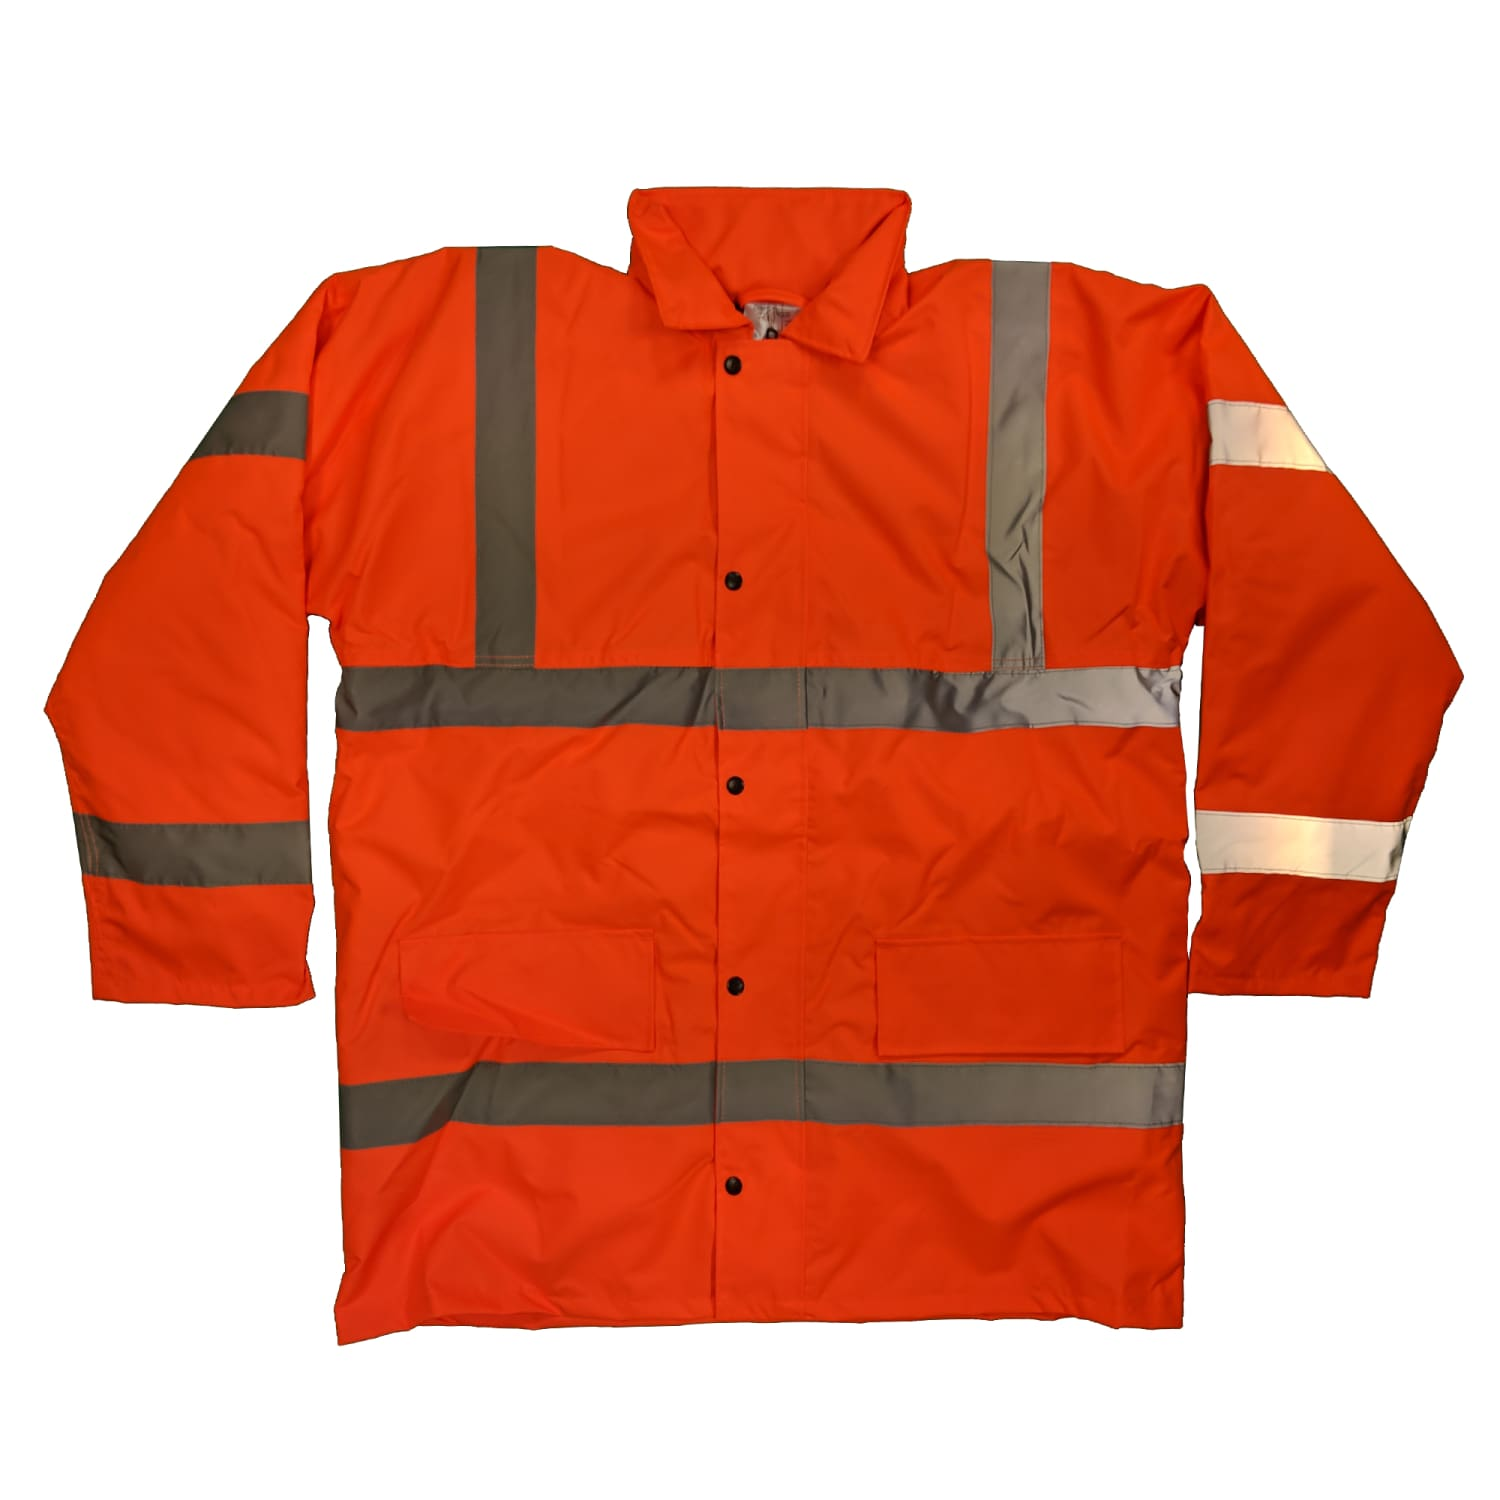 Yoko Hi-Vis Coat - HVP300 - Orange 1